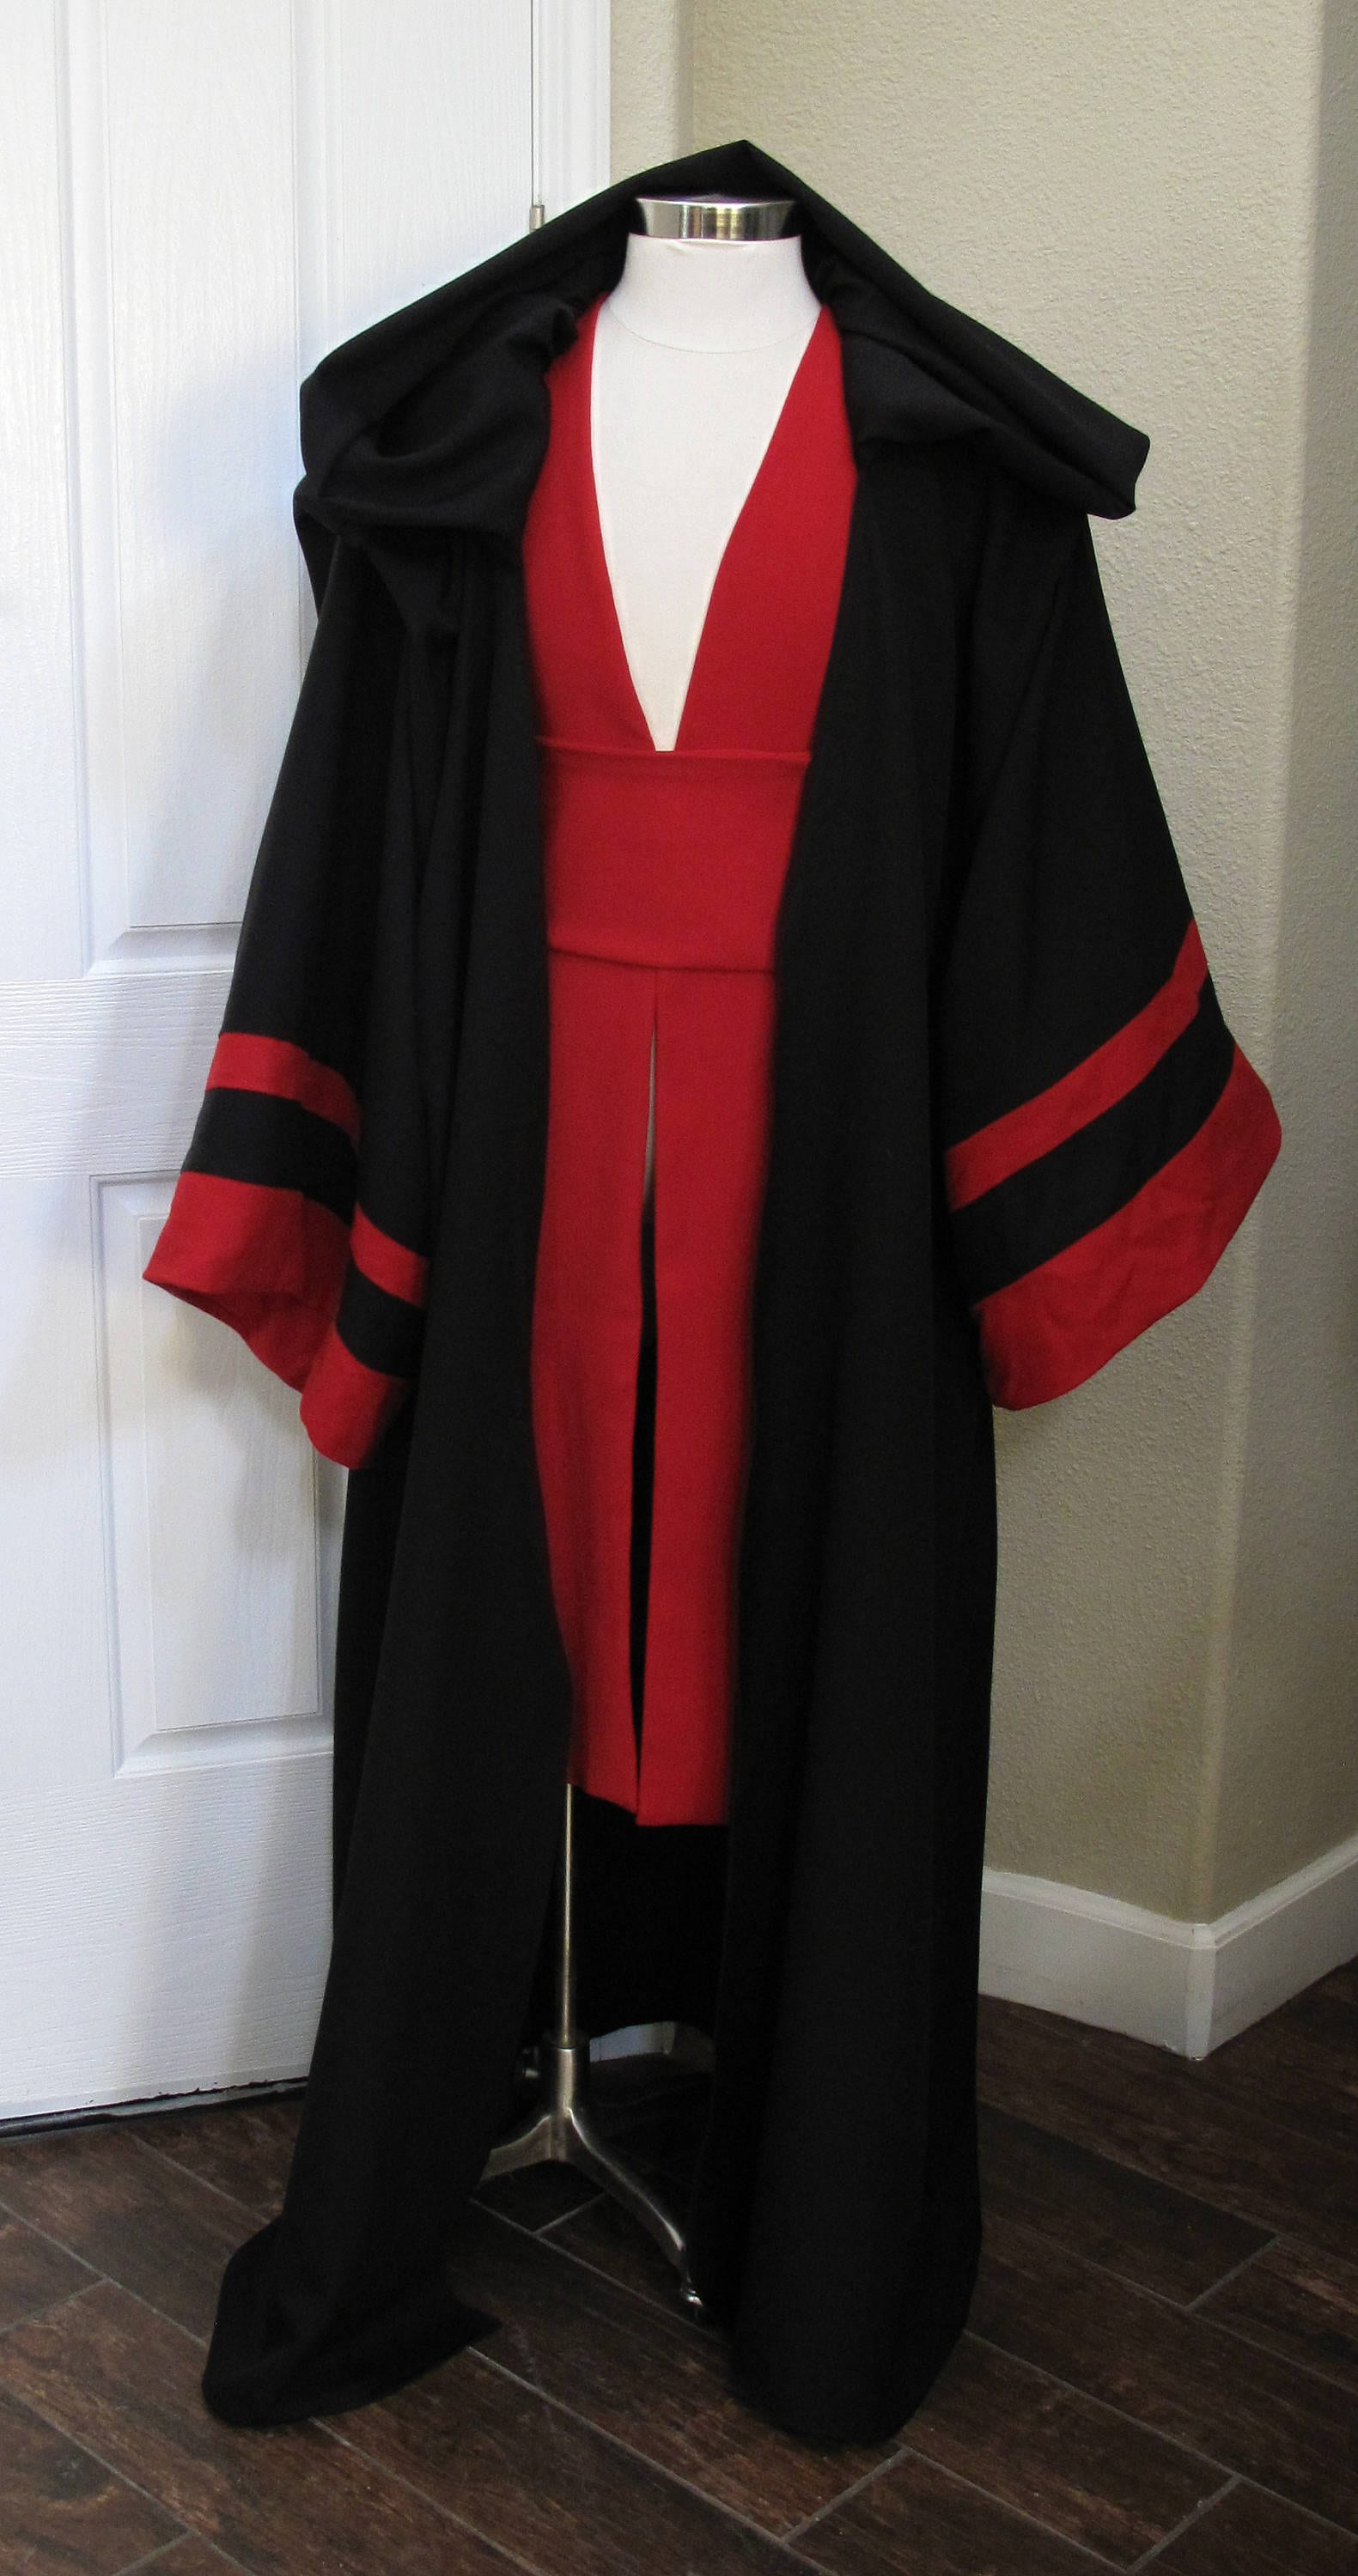 98064da83a Sith Acolyte costume robe with red tabards and a sash